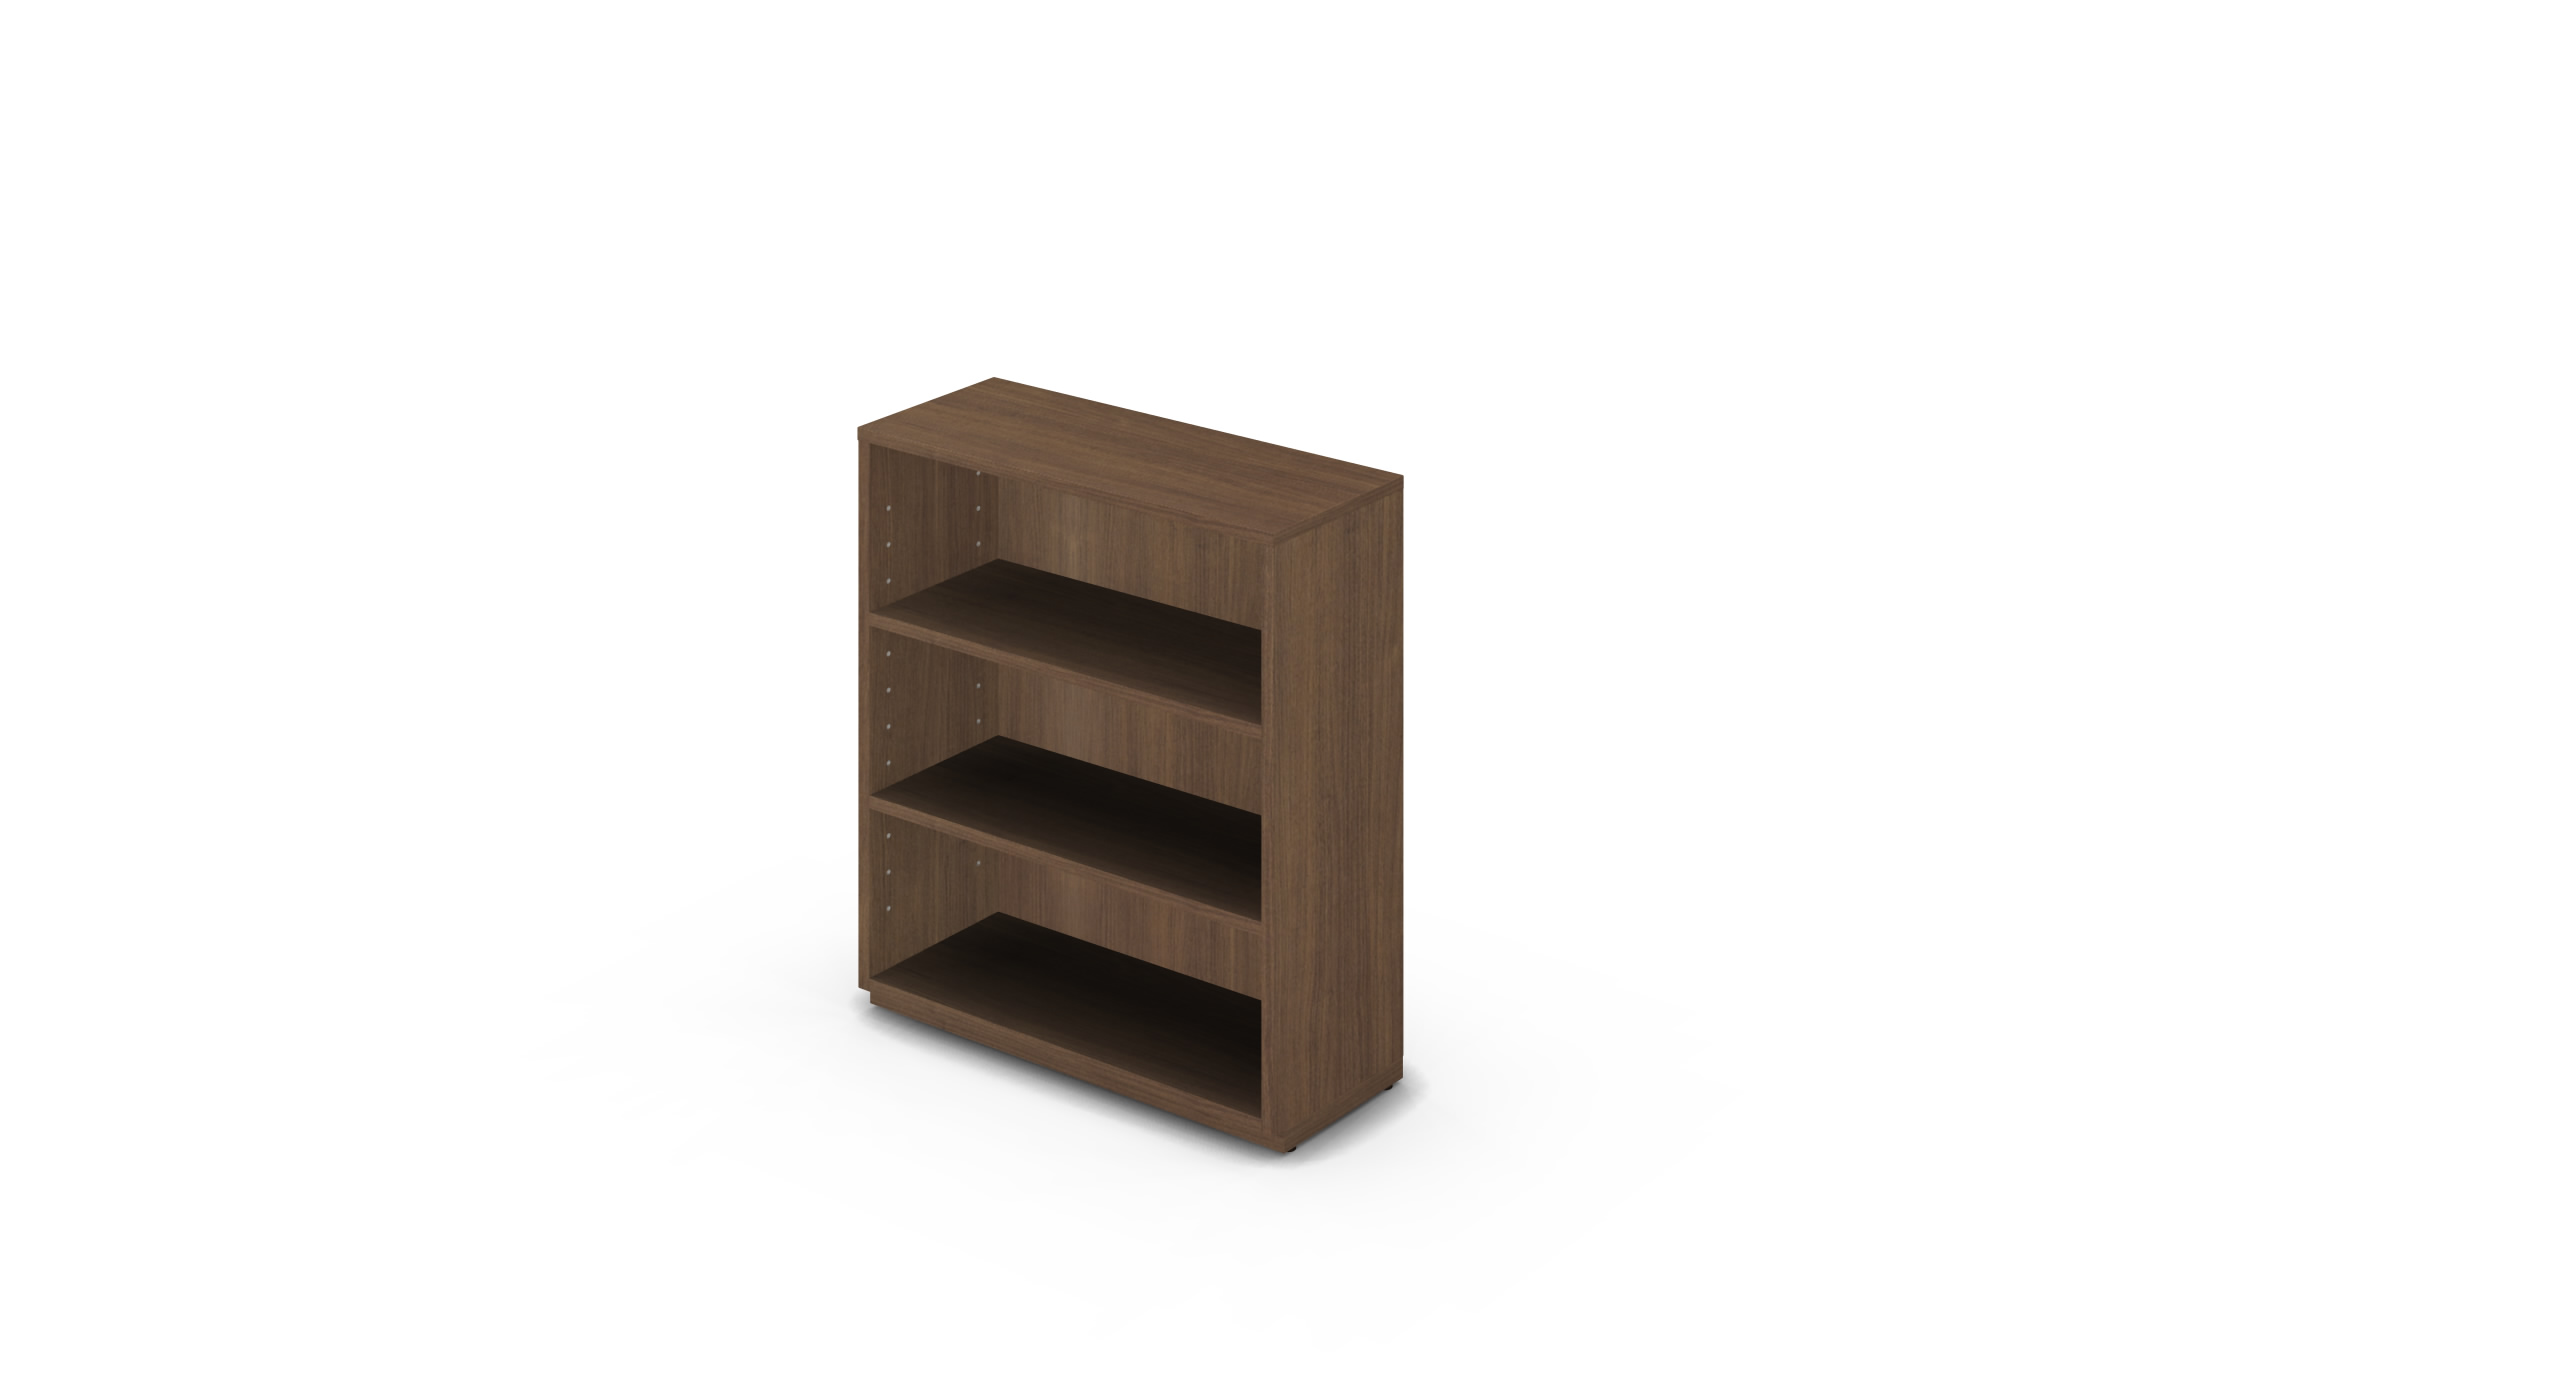 Shelf_900x350x1125_Walnut